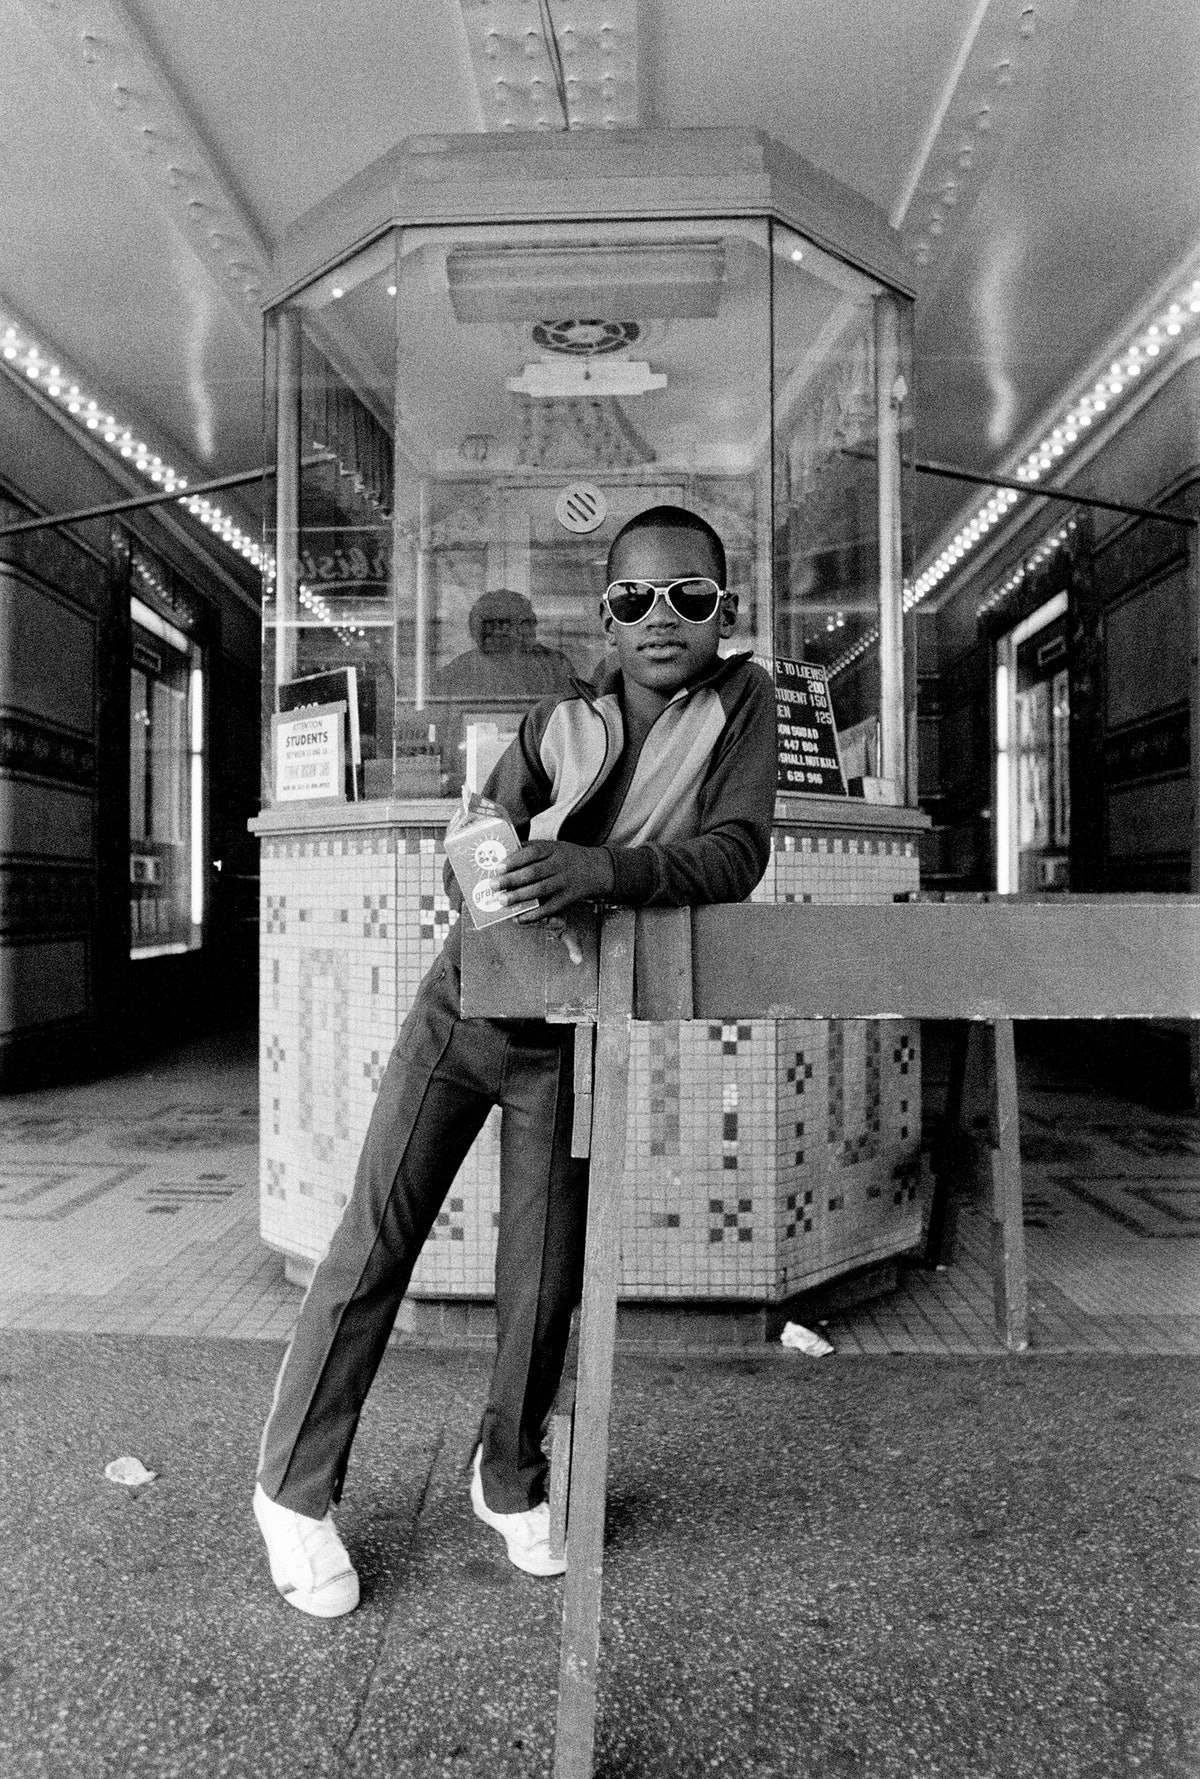 Dawoud Bey, A Boy in Front of the Loew's 125th Street Movie Theater, Harlem, NY from Harlem, U.S.A., 1976.